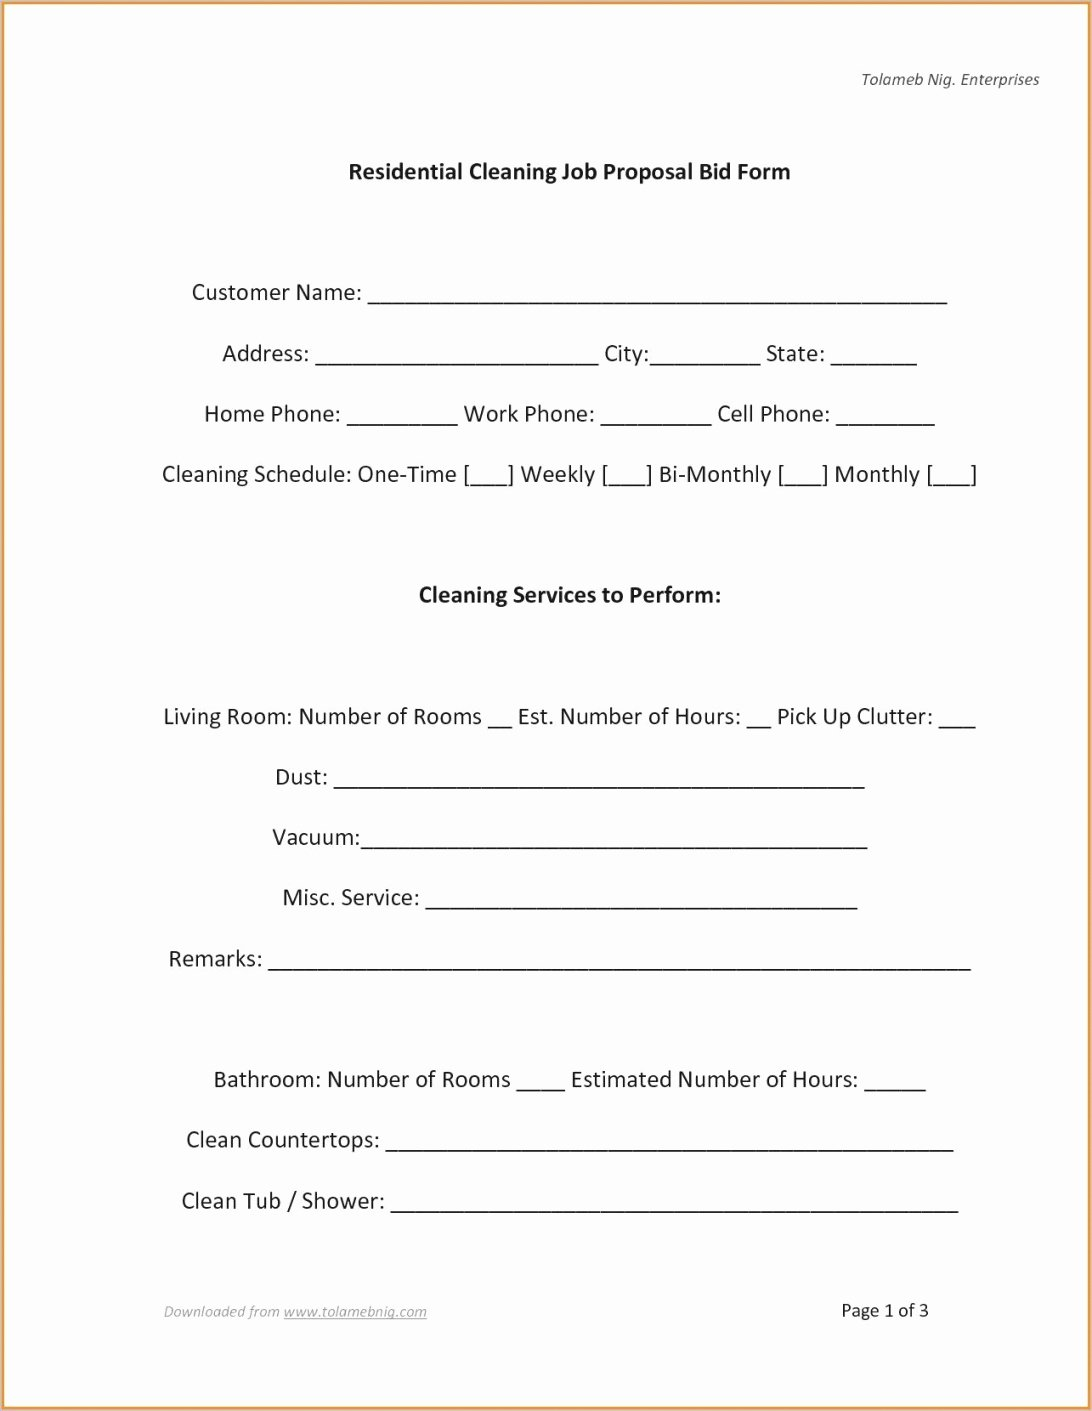 Free Construction Proposal Template Pdf New Bid Proposal Template Pdf Lavanc